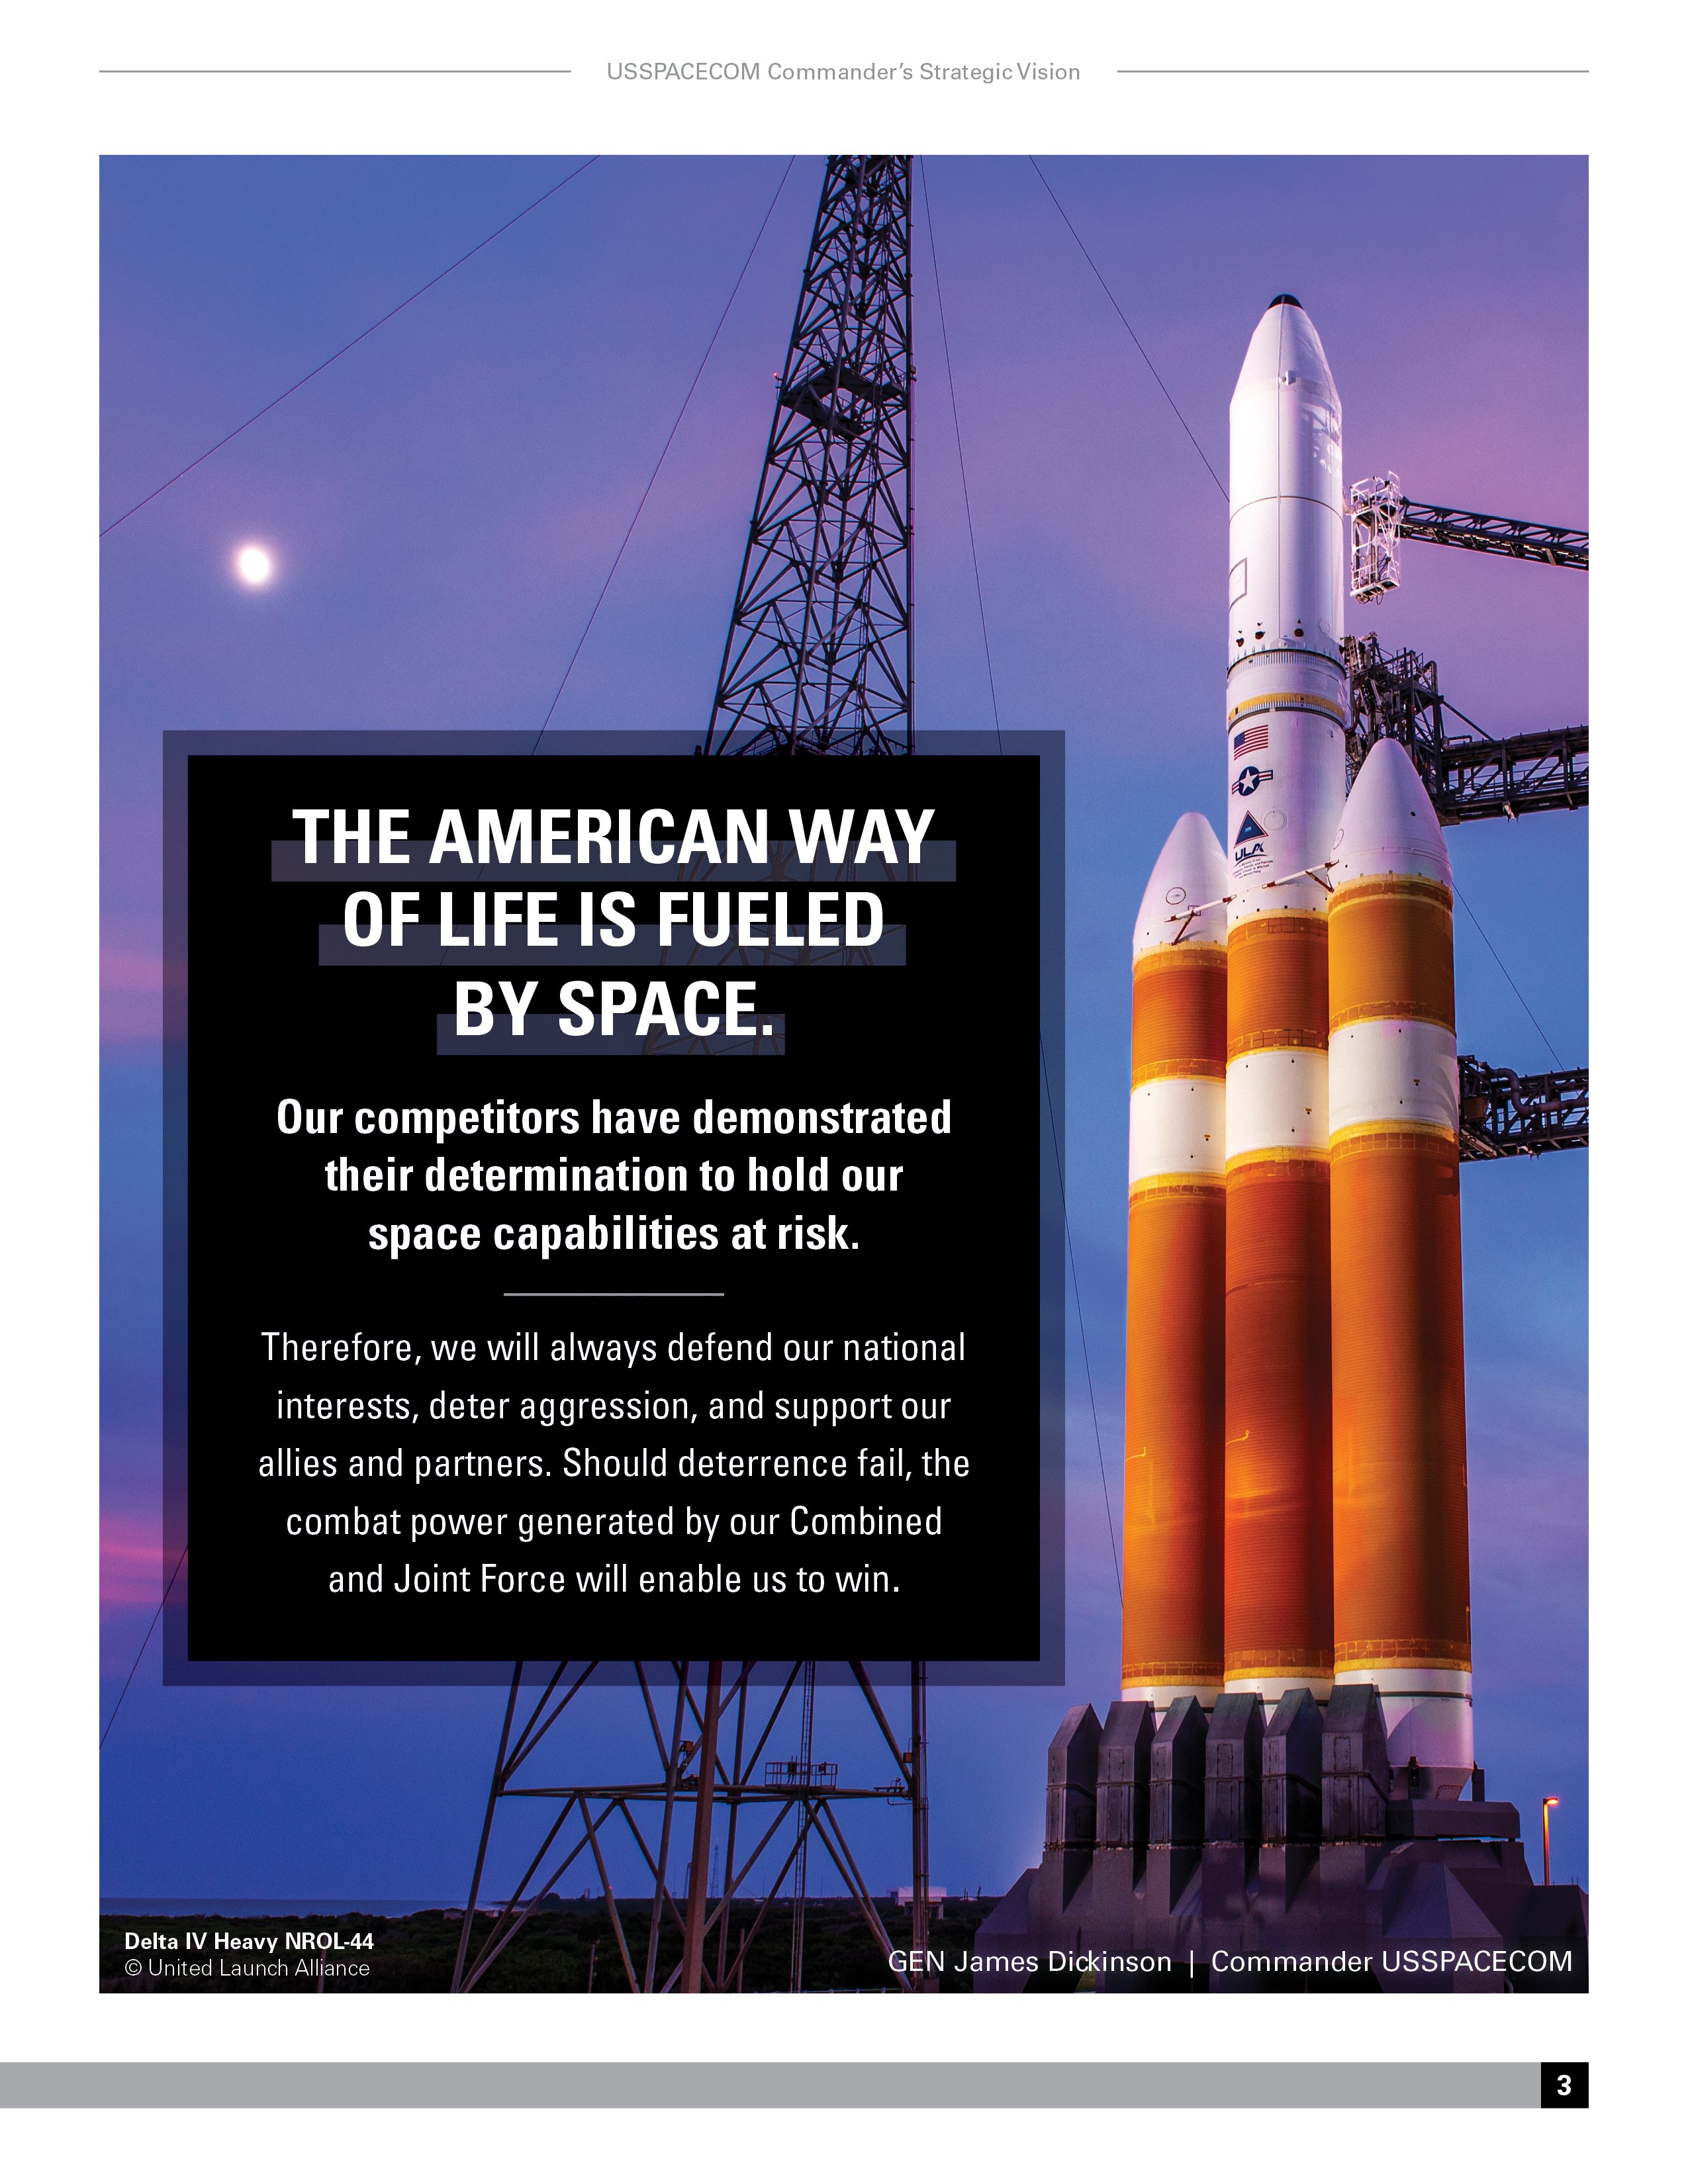 American way of life fueled by space graphic